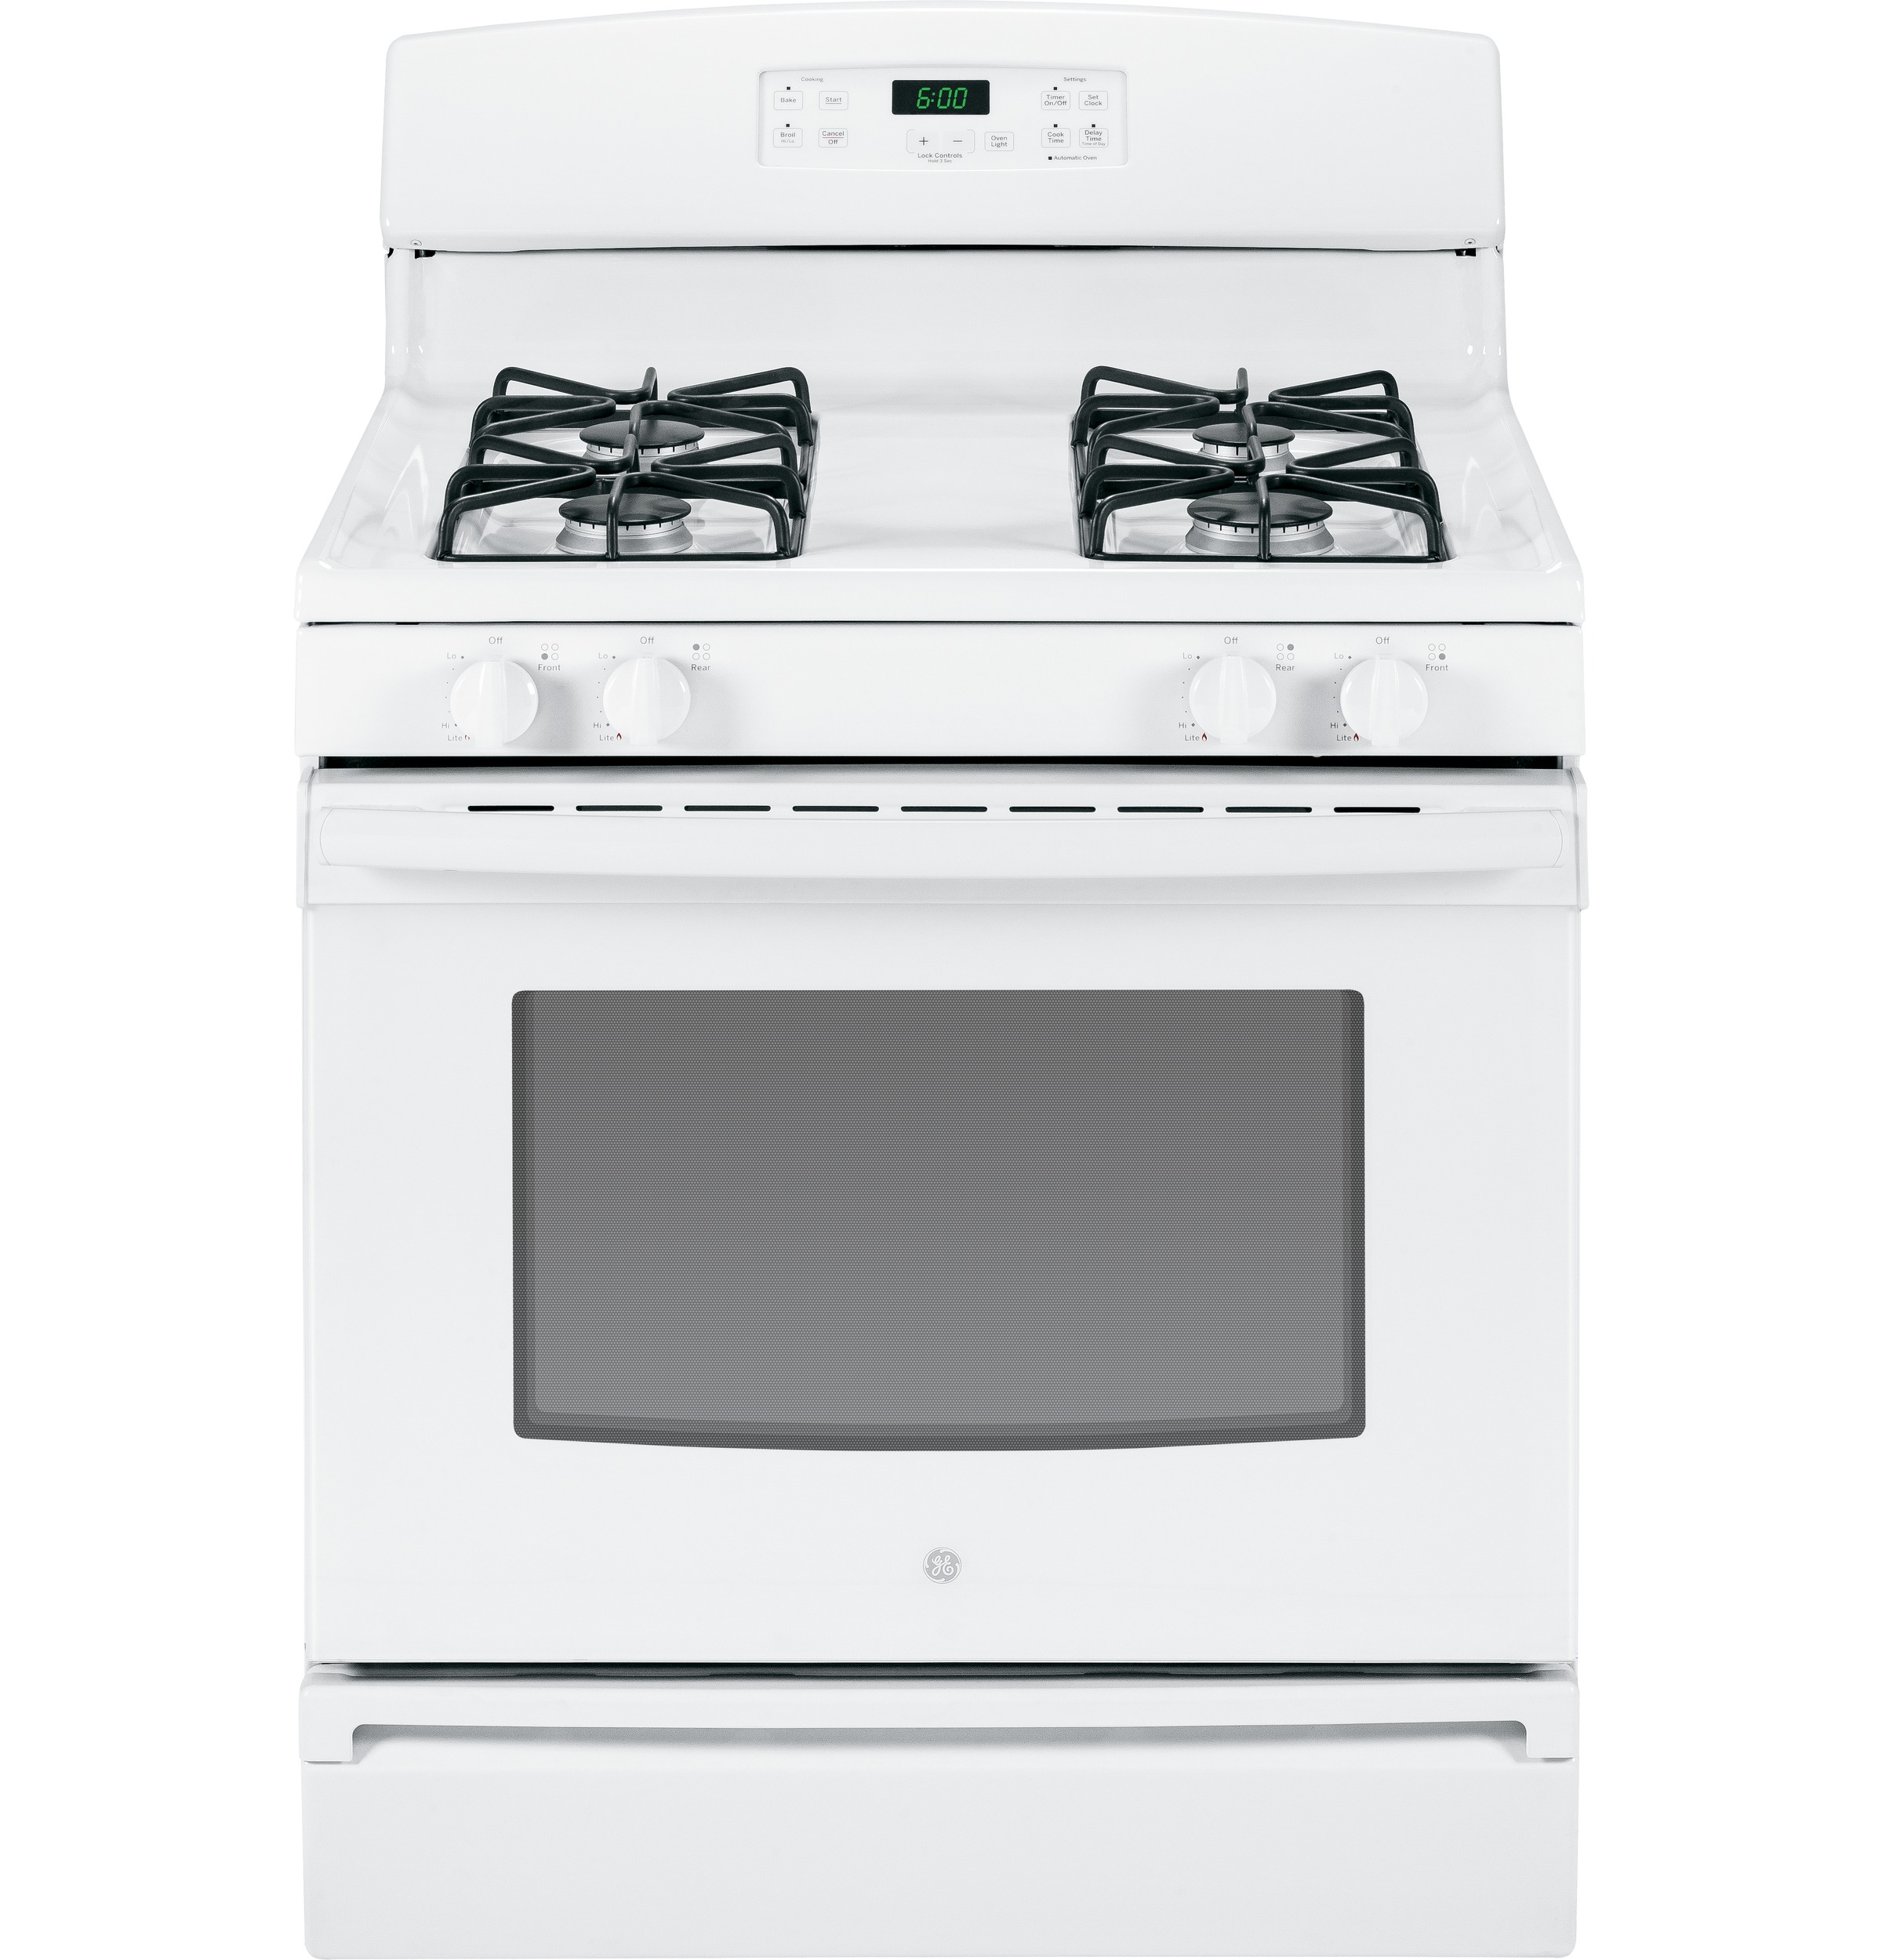 ge oven ge gas oven manual rh geovenegamashi blogspot com ge adora stove instructions ge adora electric convection oven manual